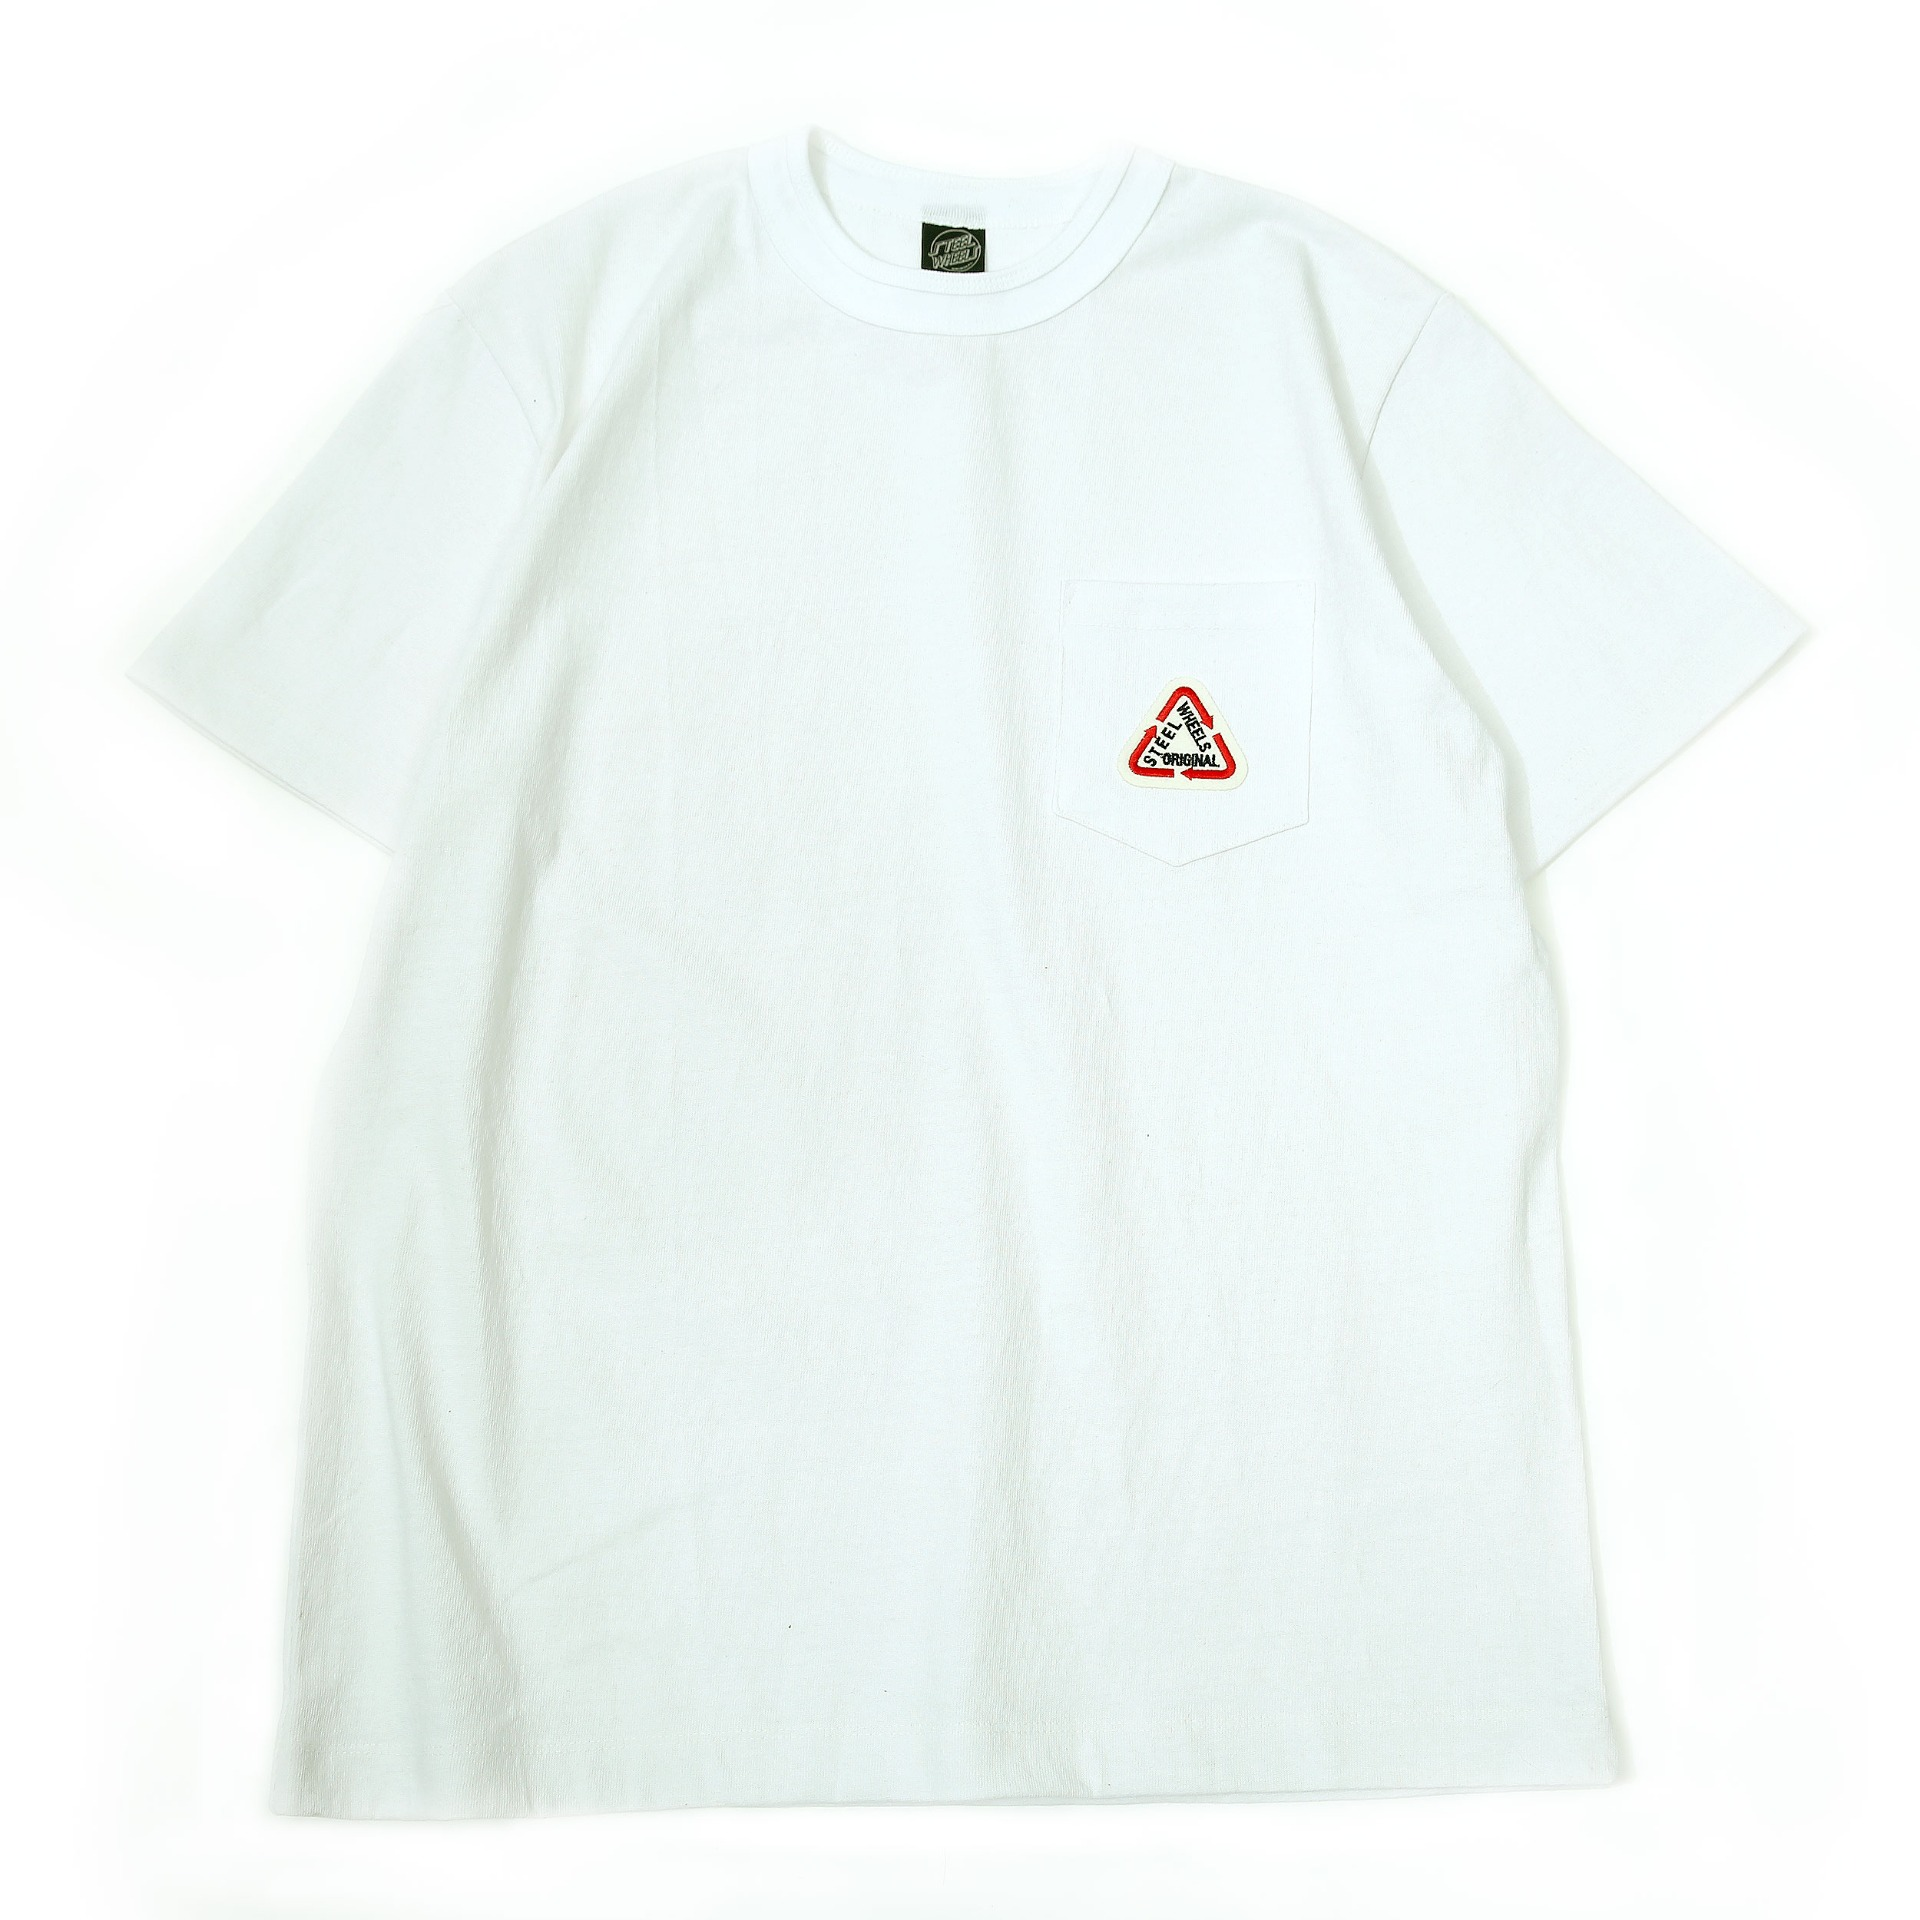 S LOGO POCKET T-SHIRT(WHITE)